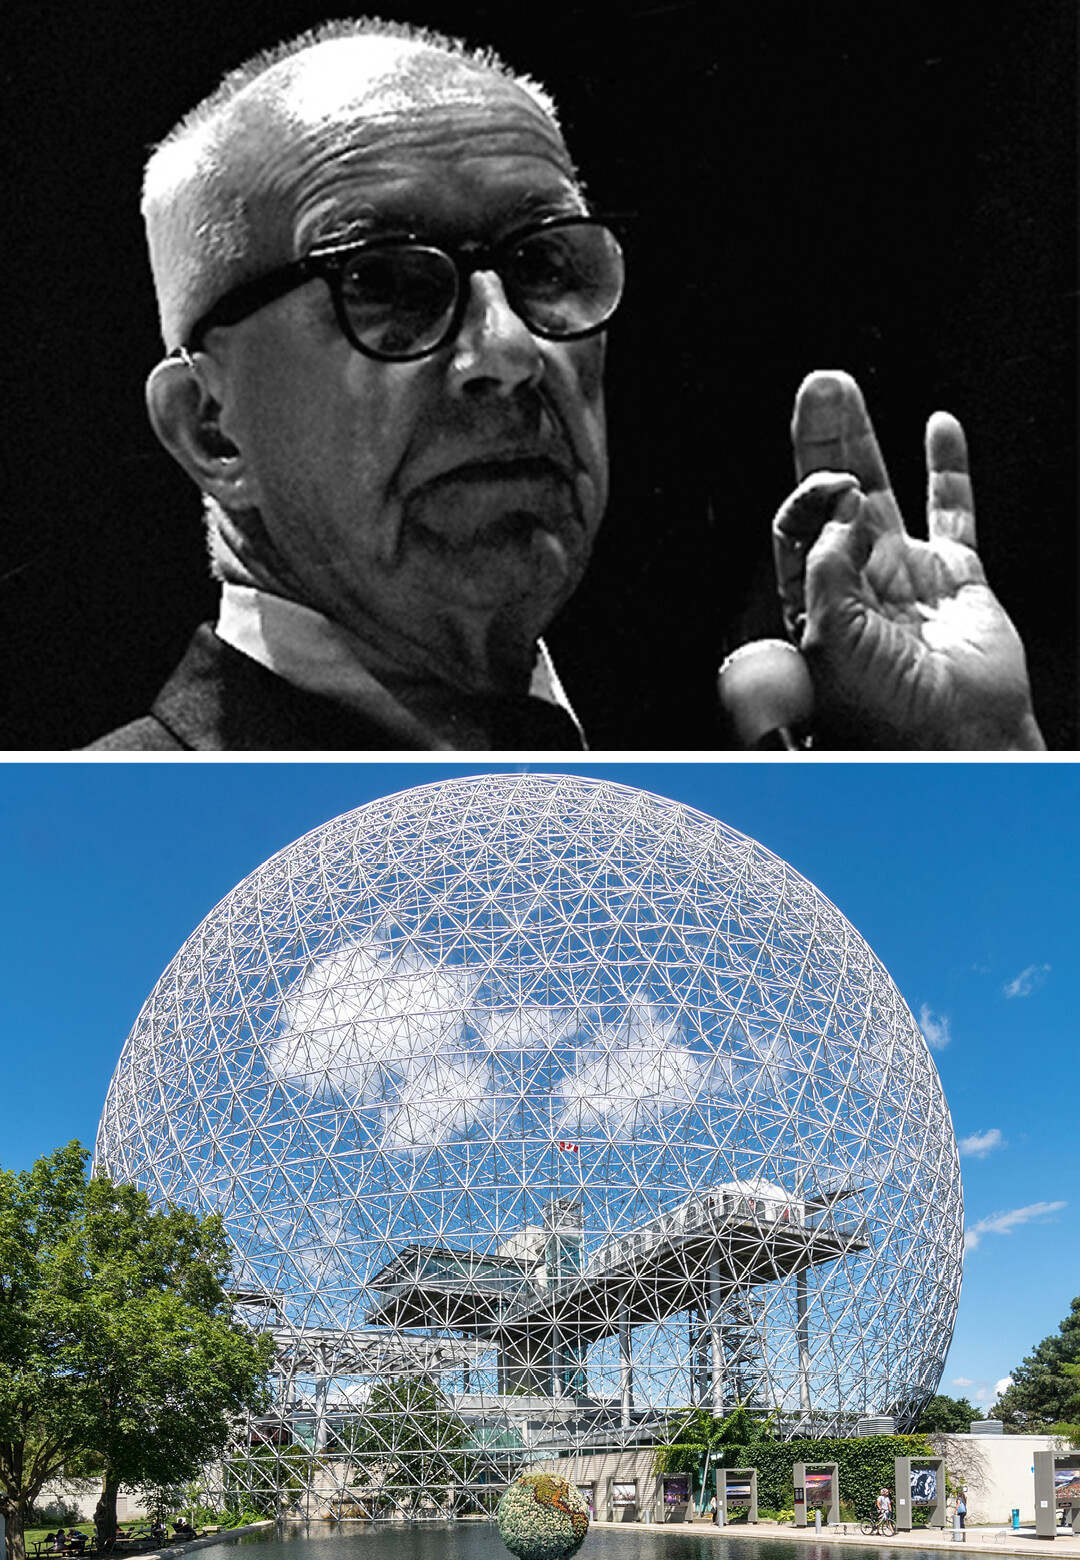 (Left) Architect Richard Buckminster Fuller and (Right) his Geodesic dome at the Montreal Biosphere museum | Richard Buckminster Fuller | STIRworld